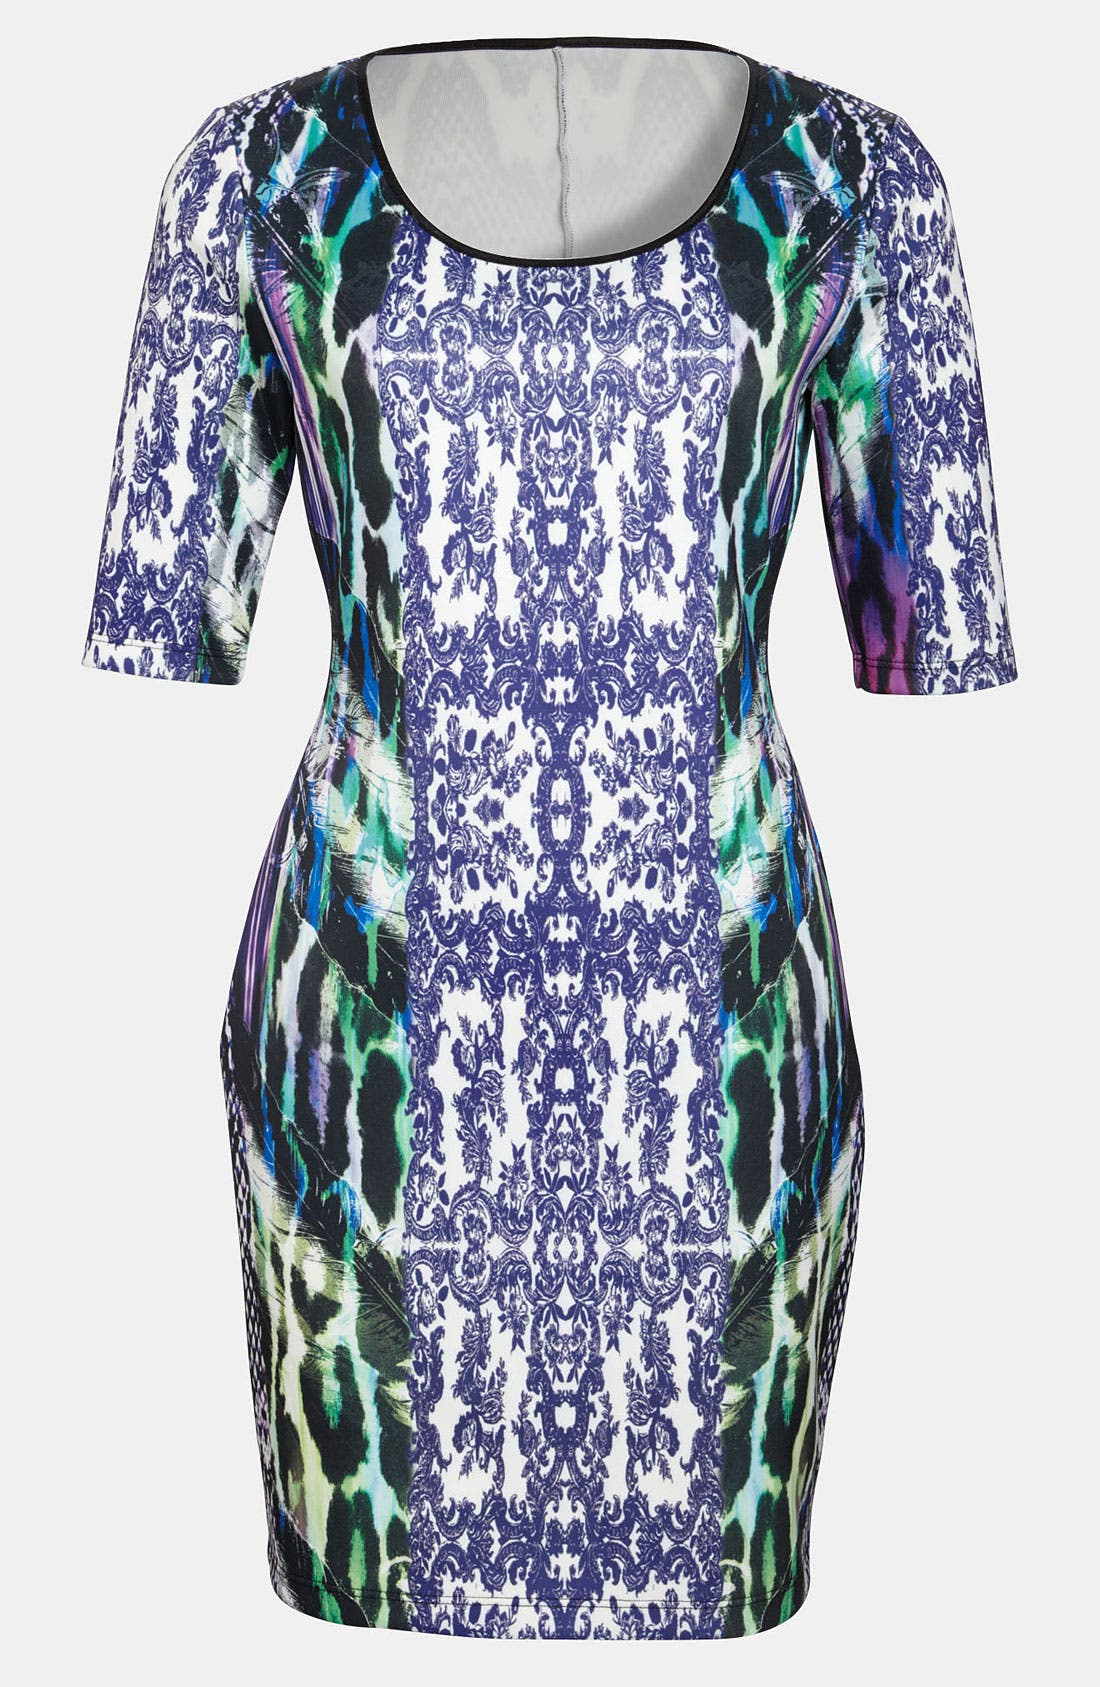 Main Image - Cosette Print Body-Con Dress